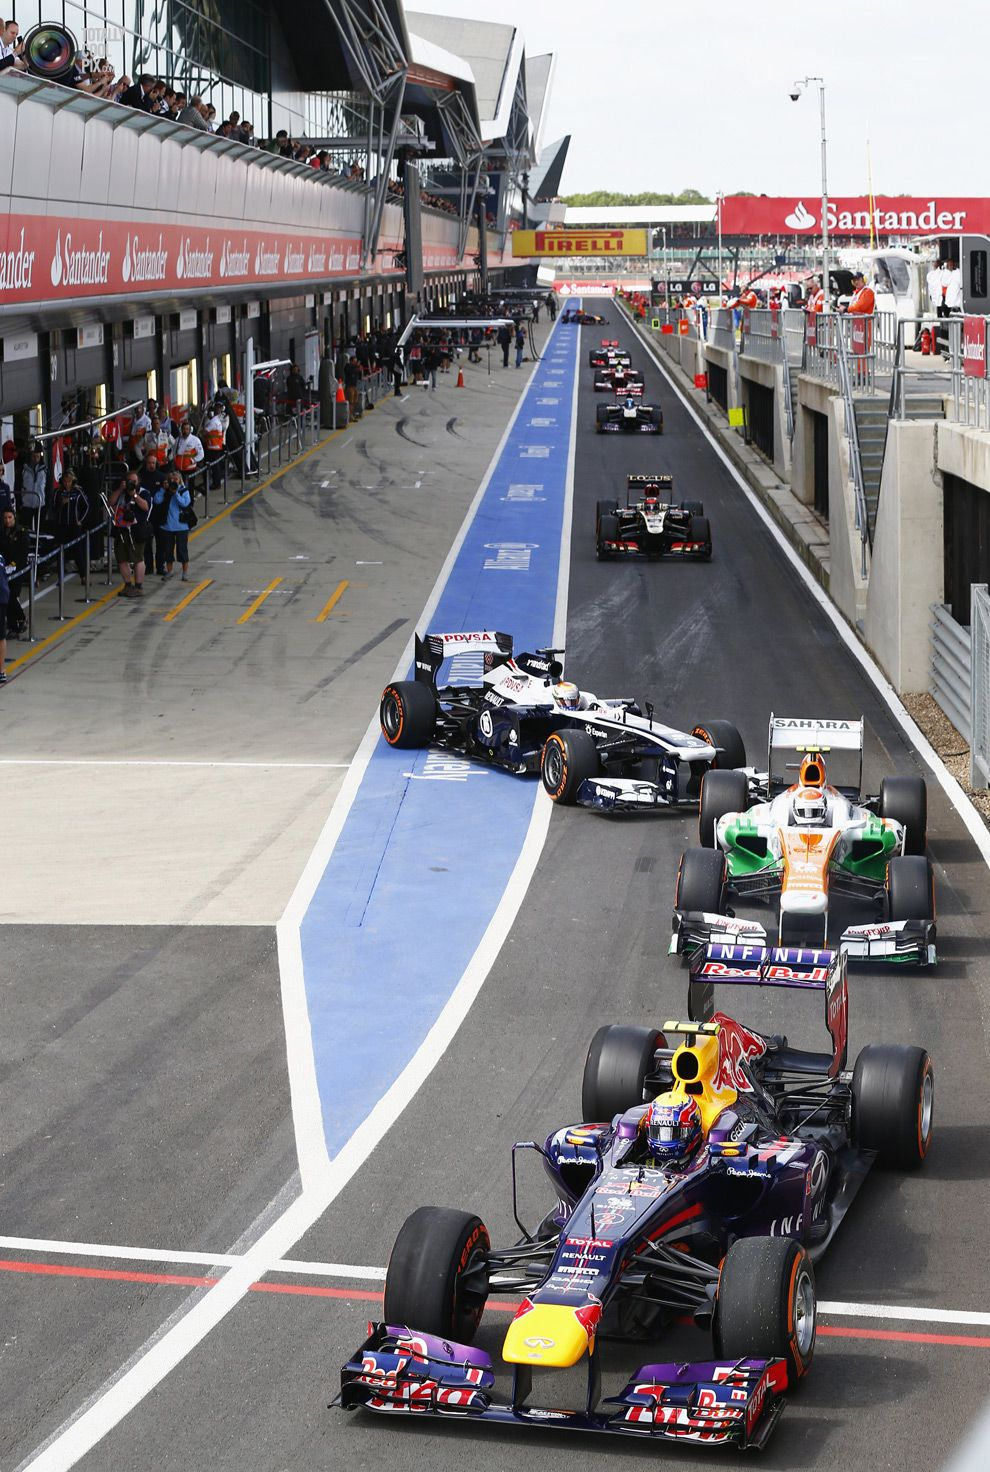 Red Bull Formula One driver Webber heads queue to leave pit lane ...